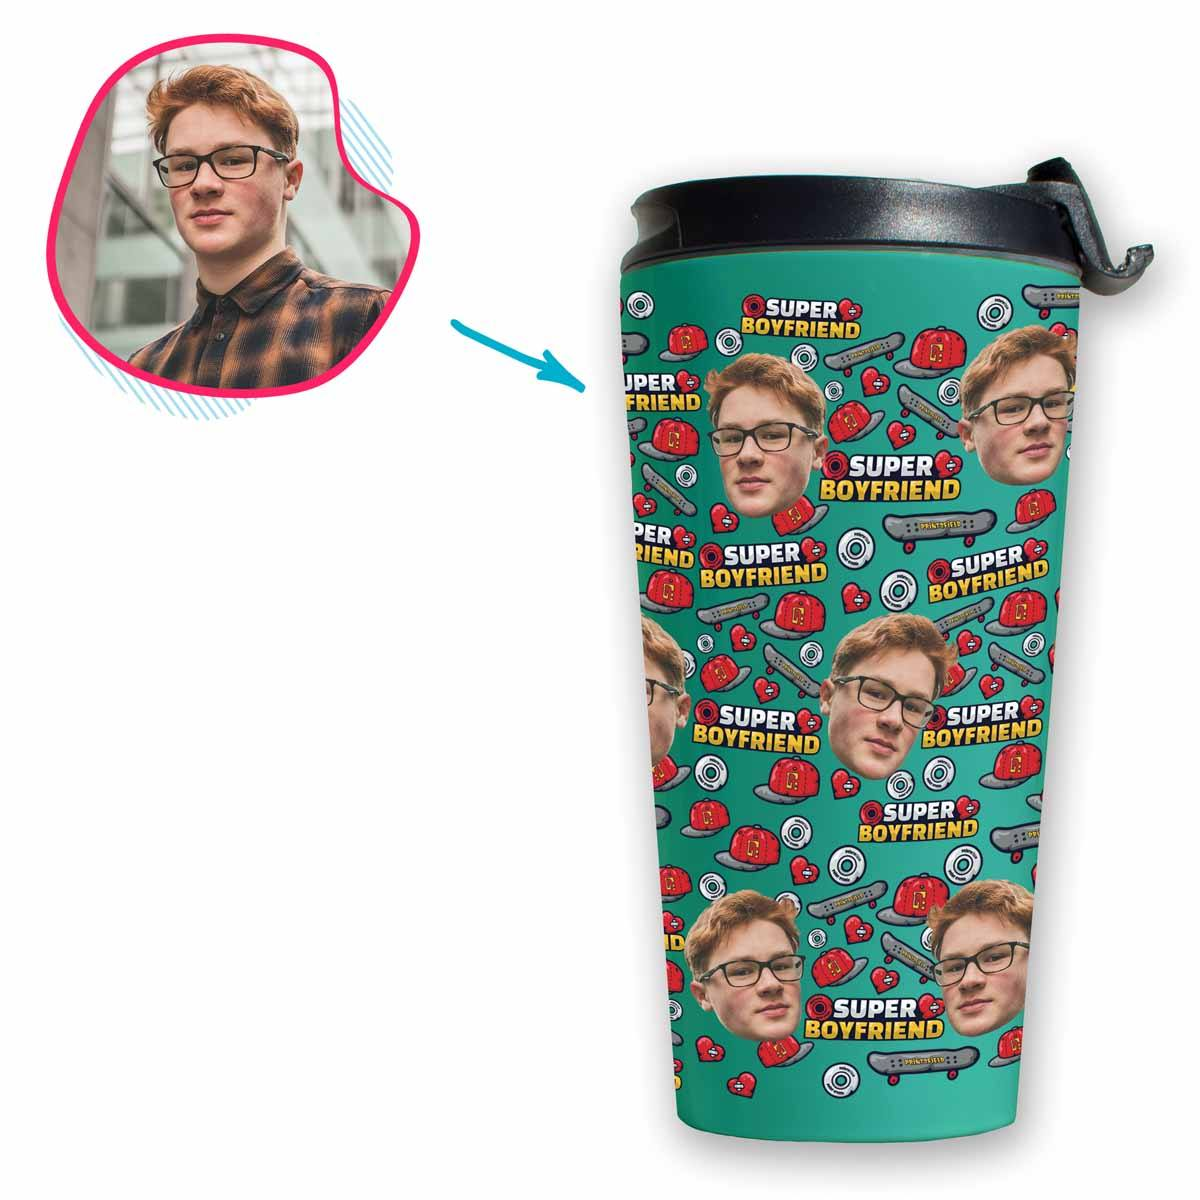 Mint Boyfriend personalized travel mug with photo of face printed on it